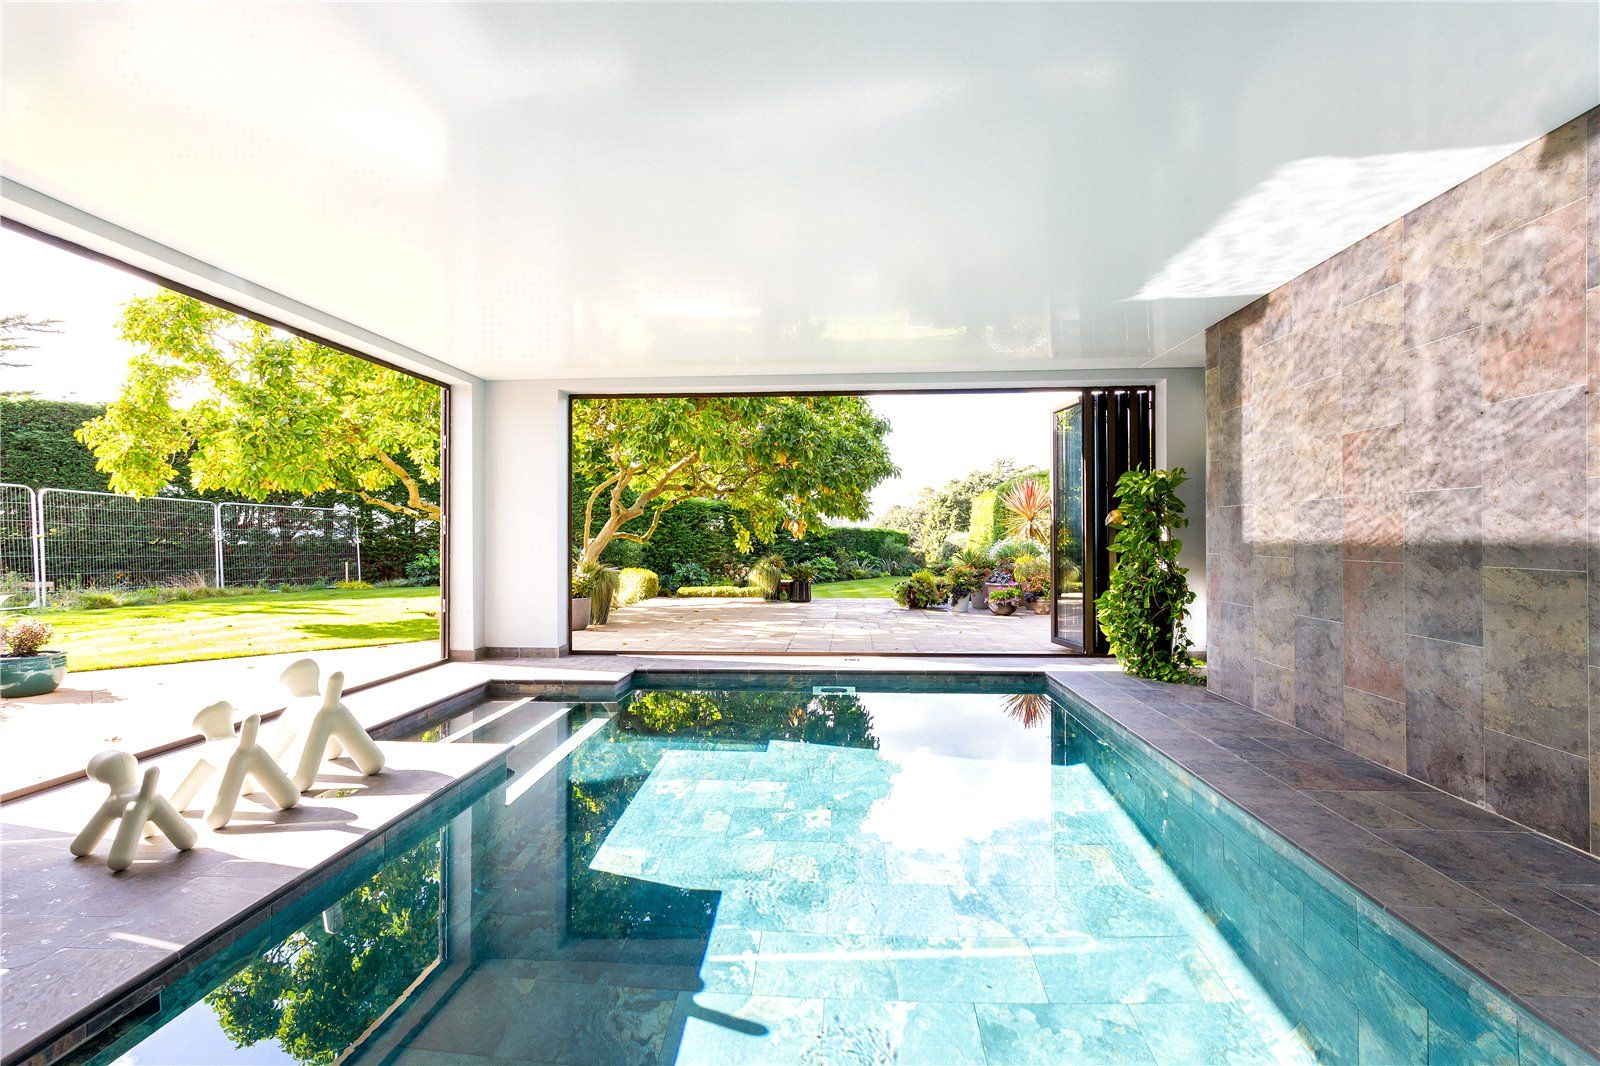 Property photo 1 of 20. Swimming Pool